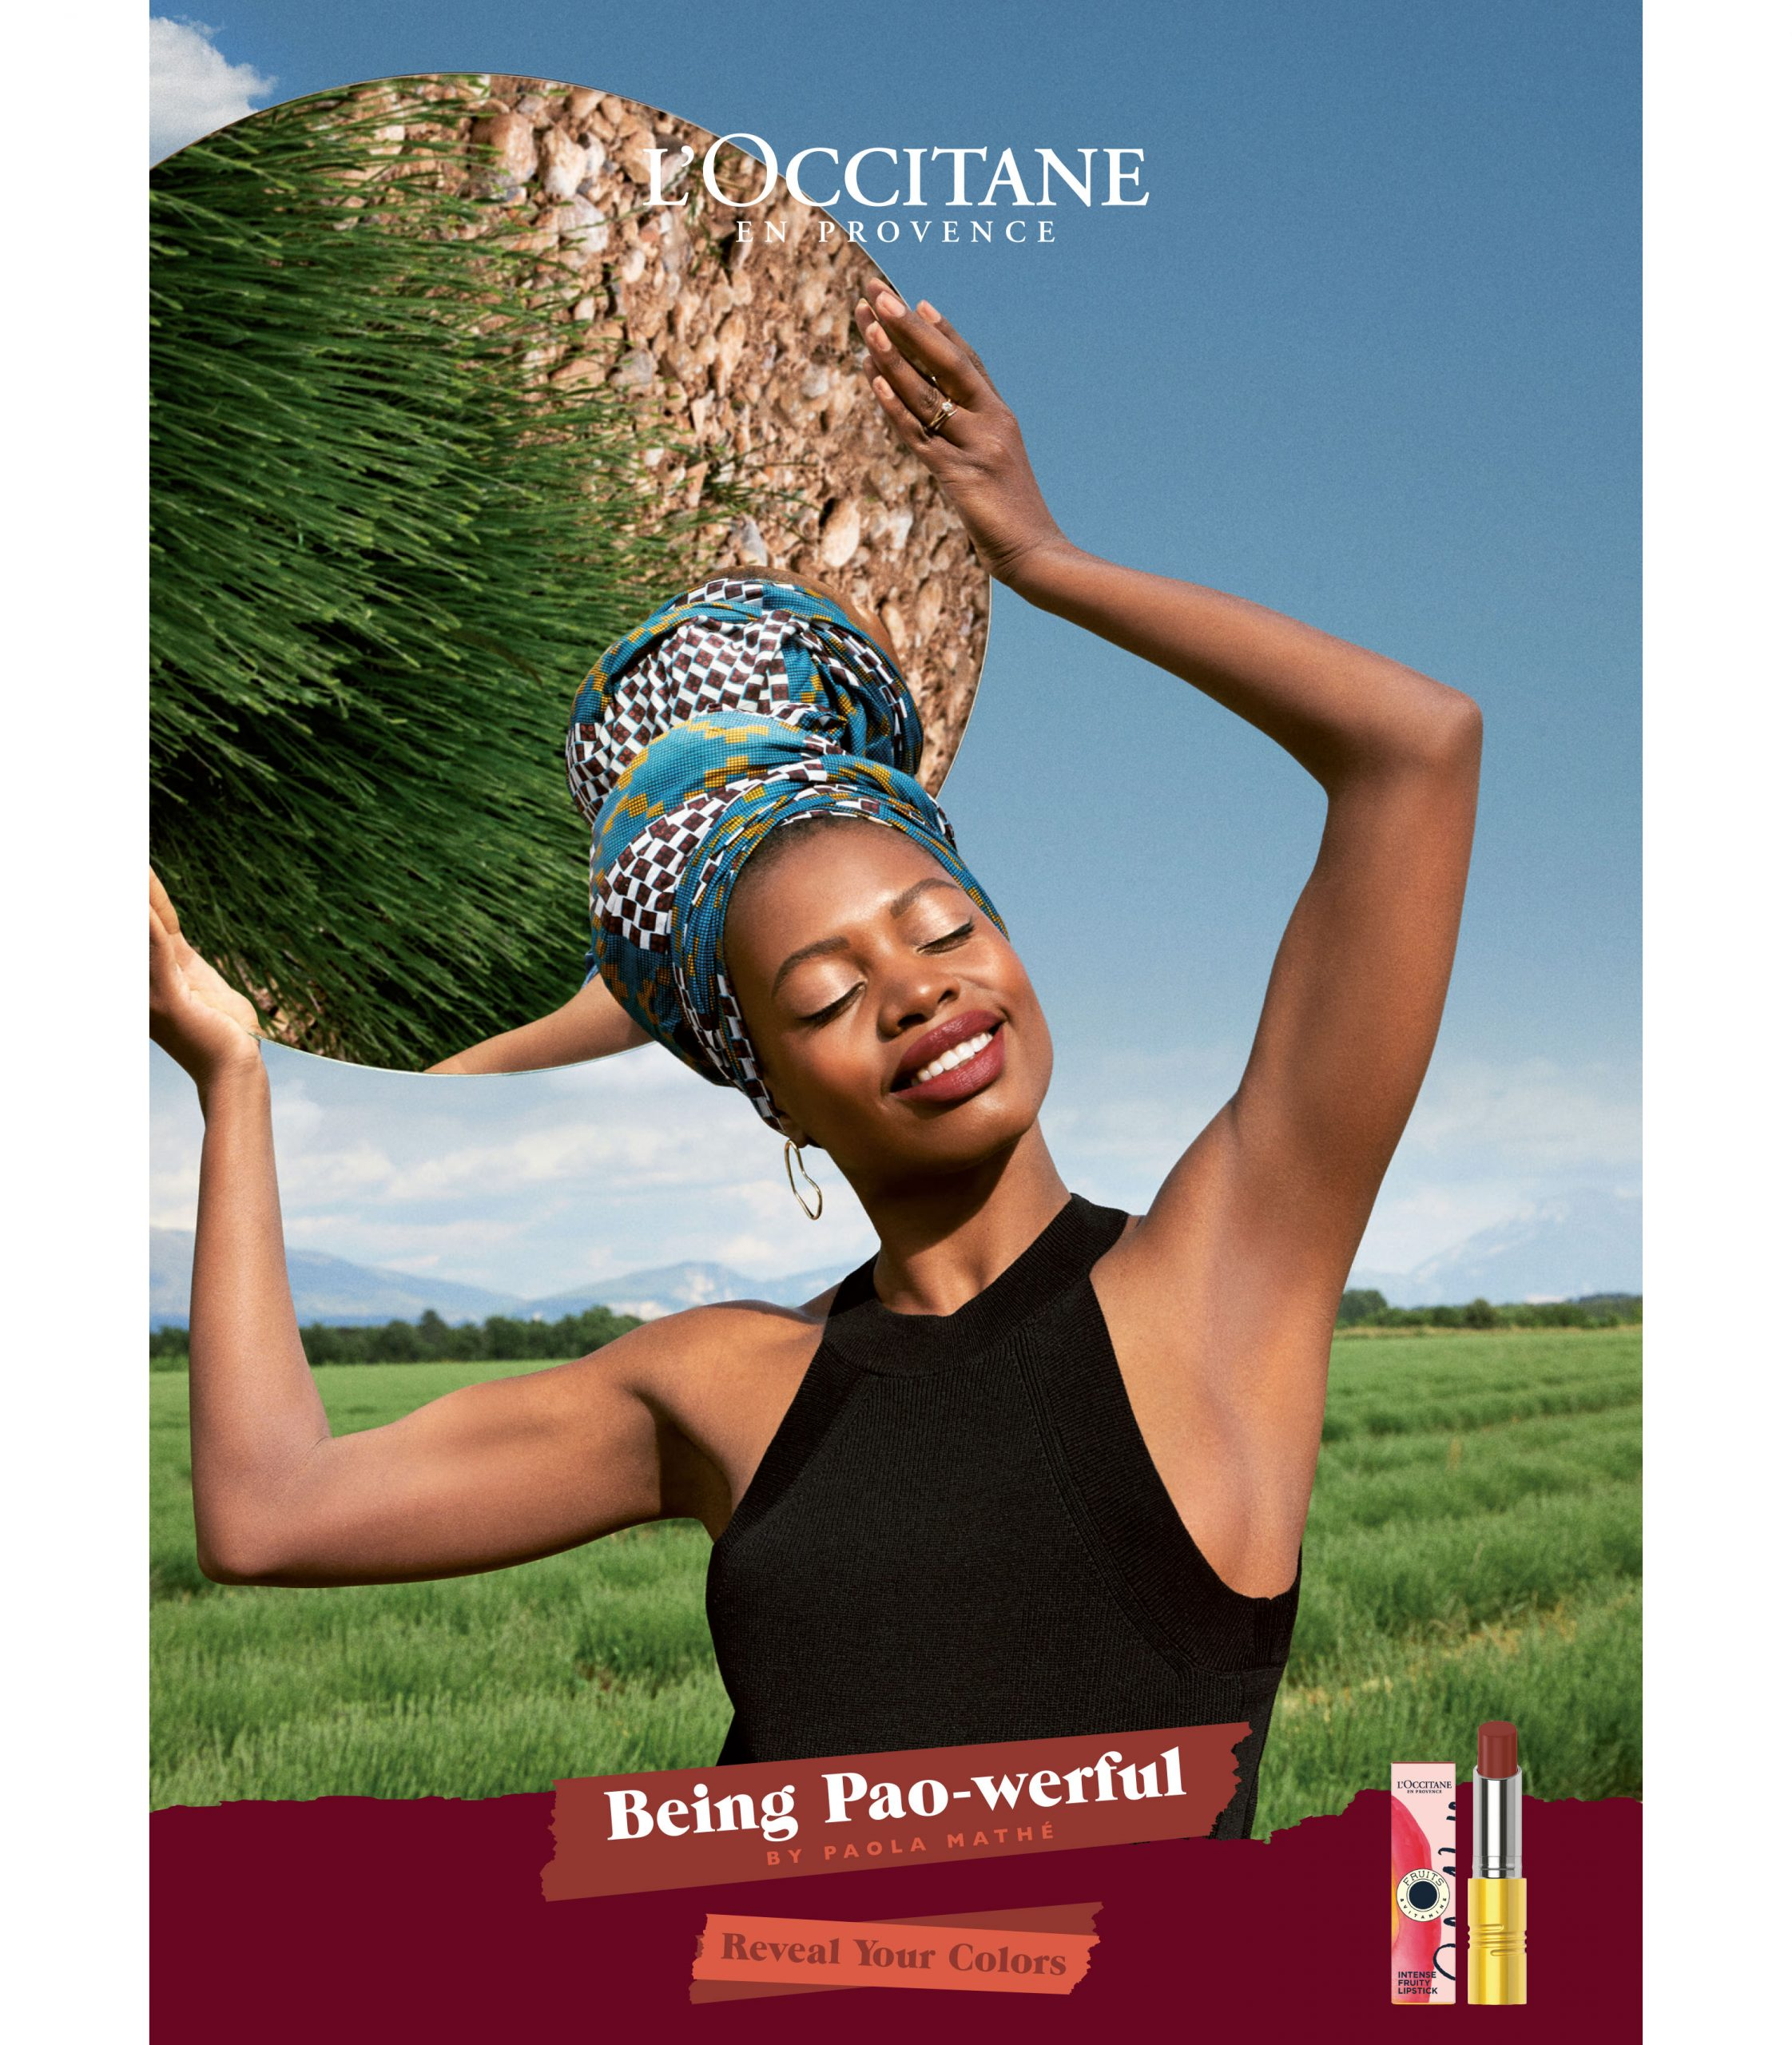 L'Occitane reveal your colors being pao-werful paola mathé